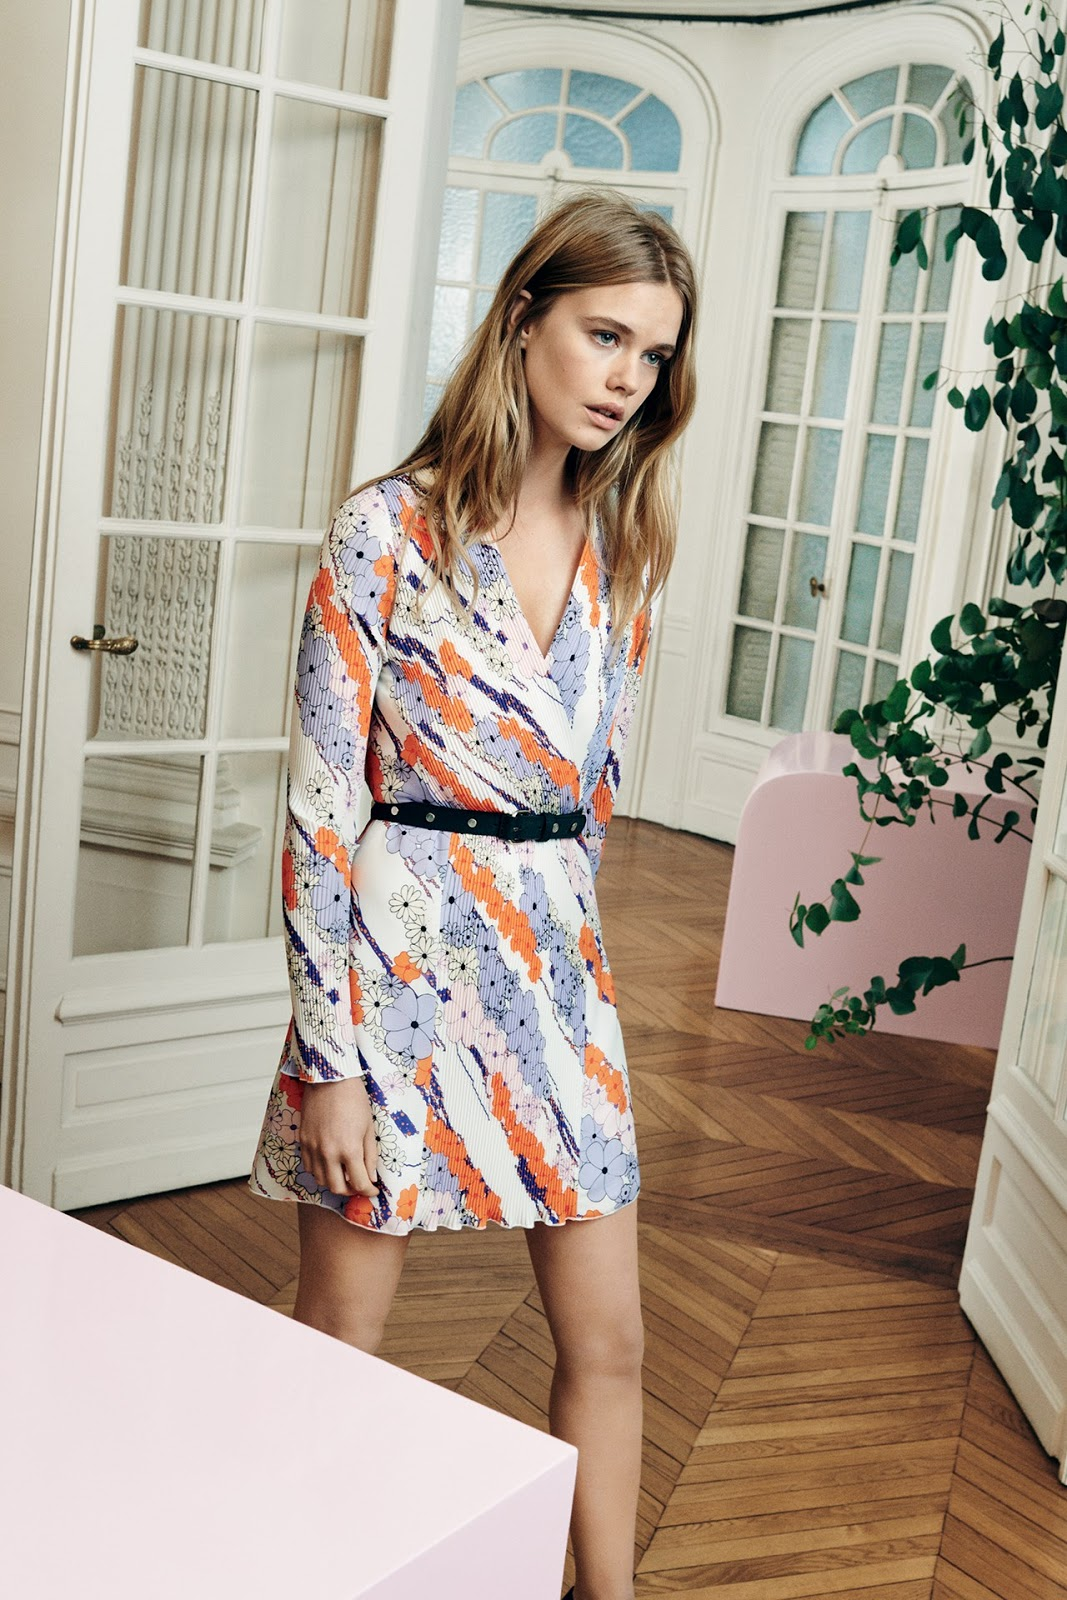 La Redoute X Carven collection via www.fashionedbylove.co.uk  / fashion blog, collections & news